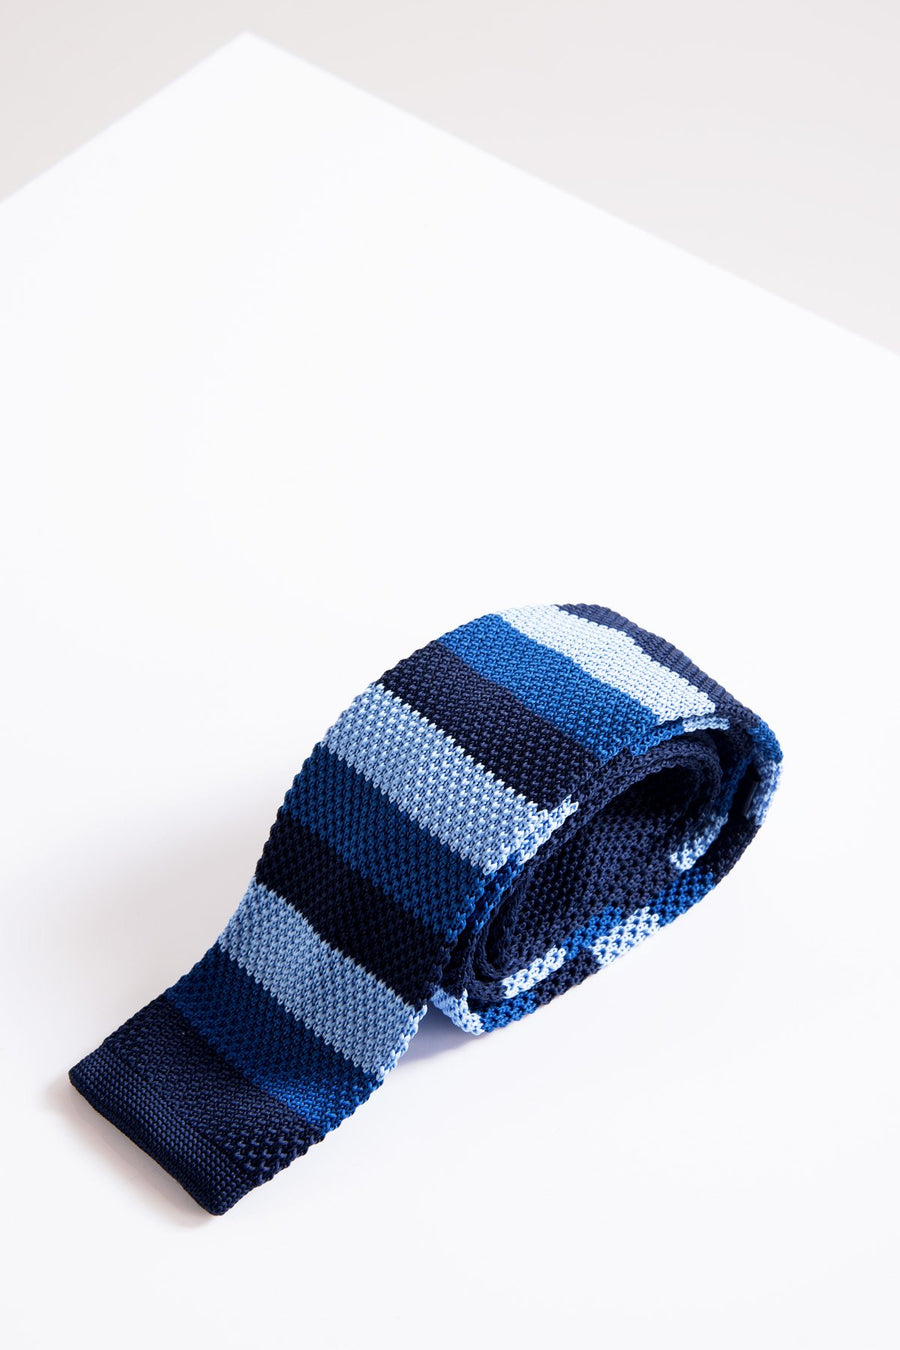 KT Blue Stripe Knitted Tie - Wedding Suit Direct